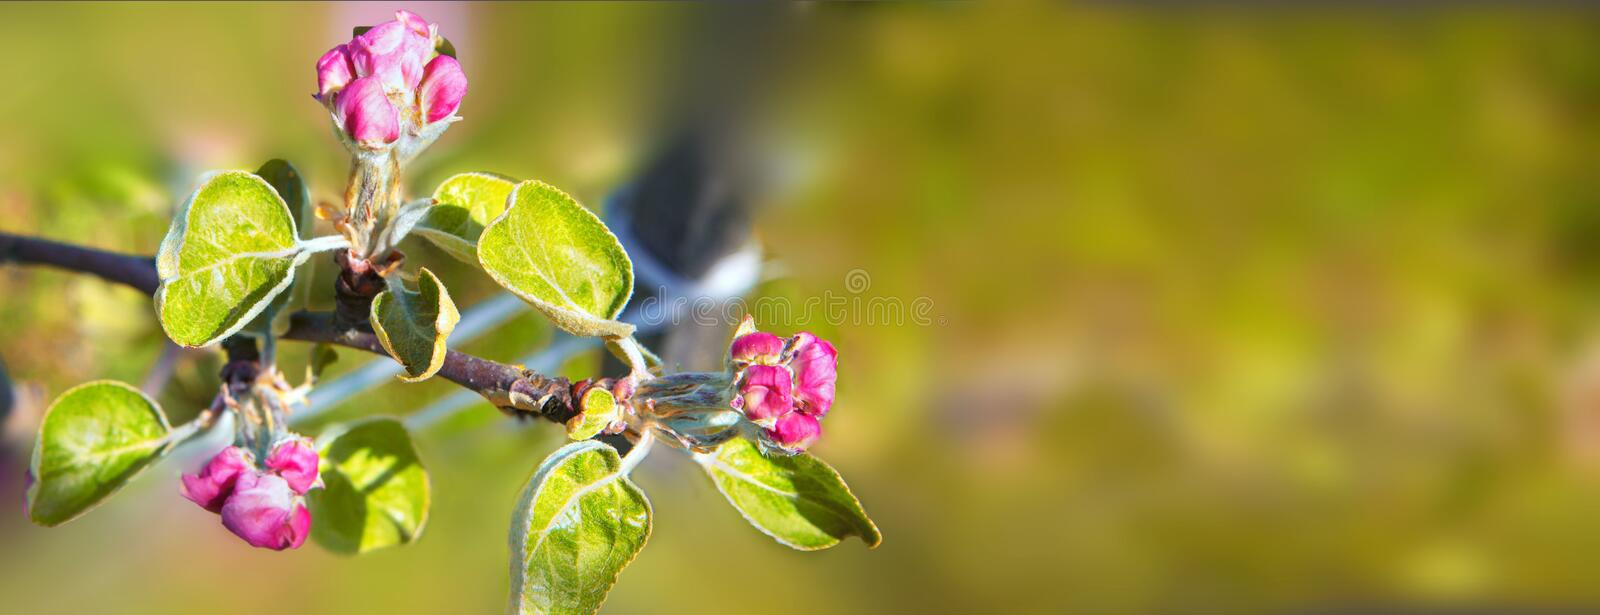 Blossoming of the apple tree in spring time with pink beautiful flowers. Macro image with copy space. Natural seasonal background stock photography